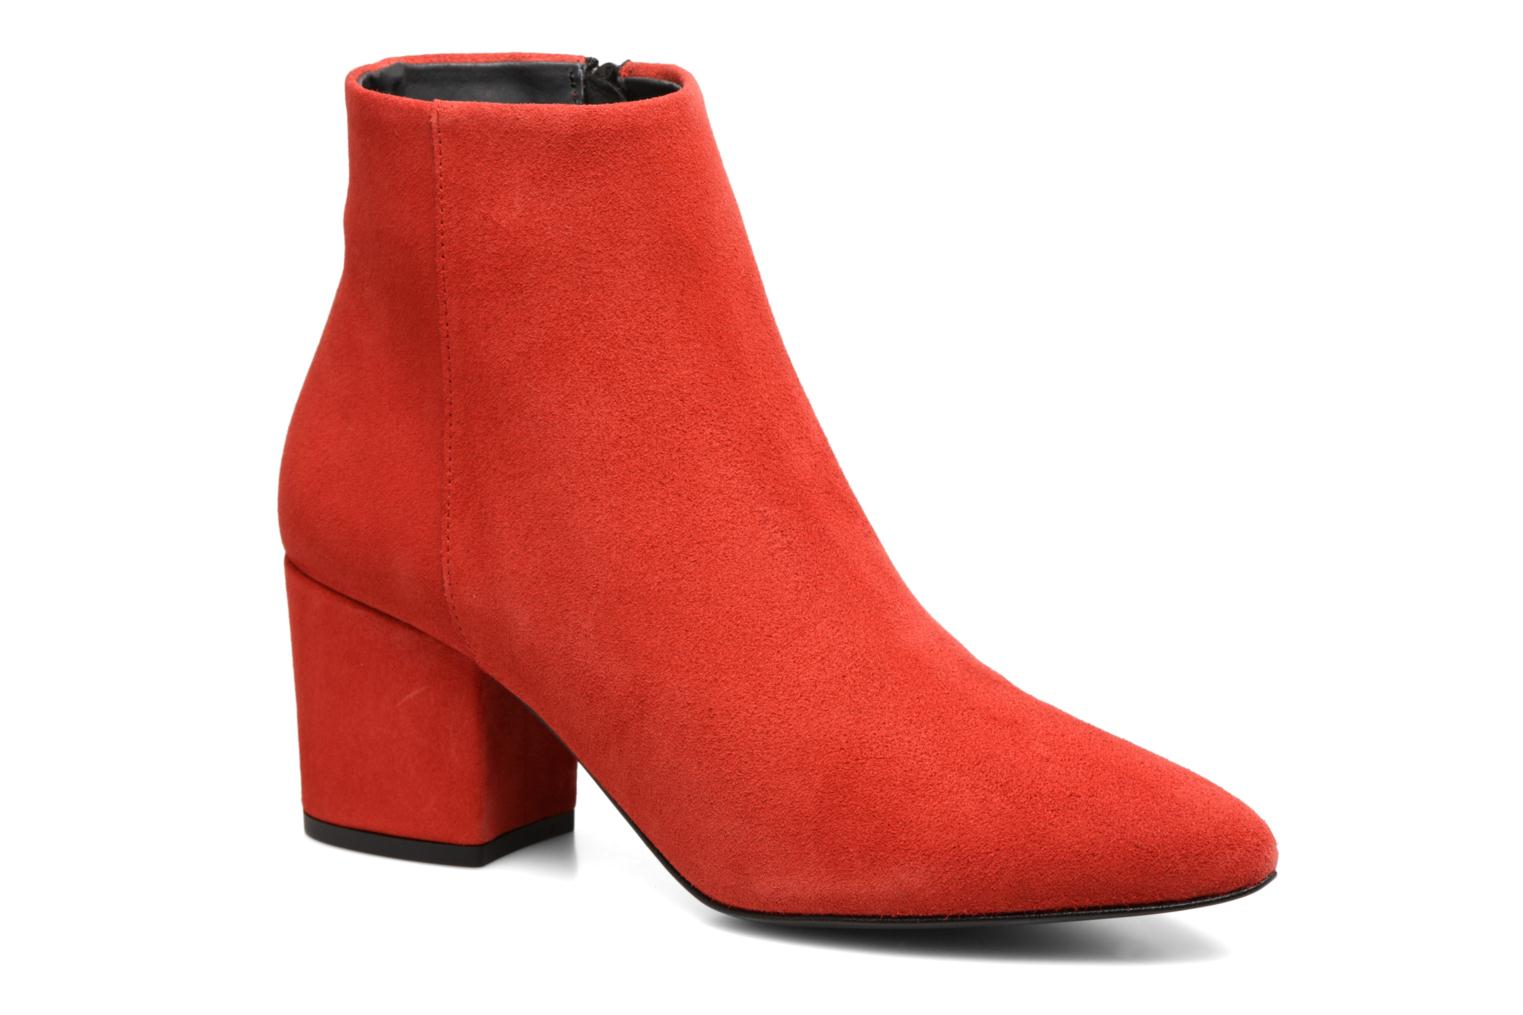 Vero Moda ASTRID LEATHER BOOT Rojo lcBuRpNW